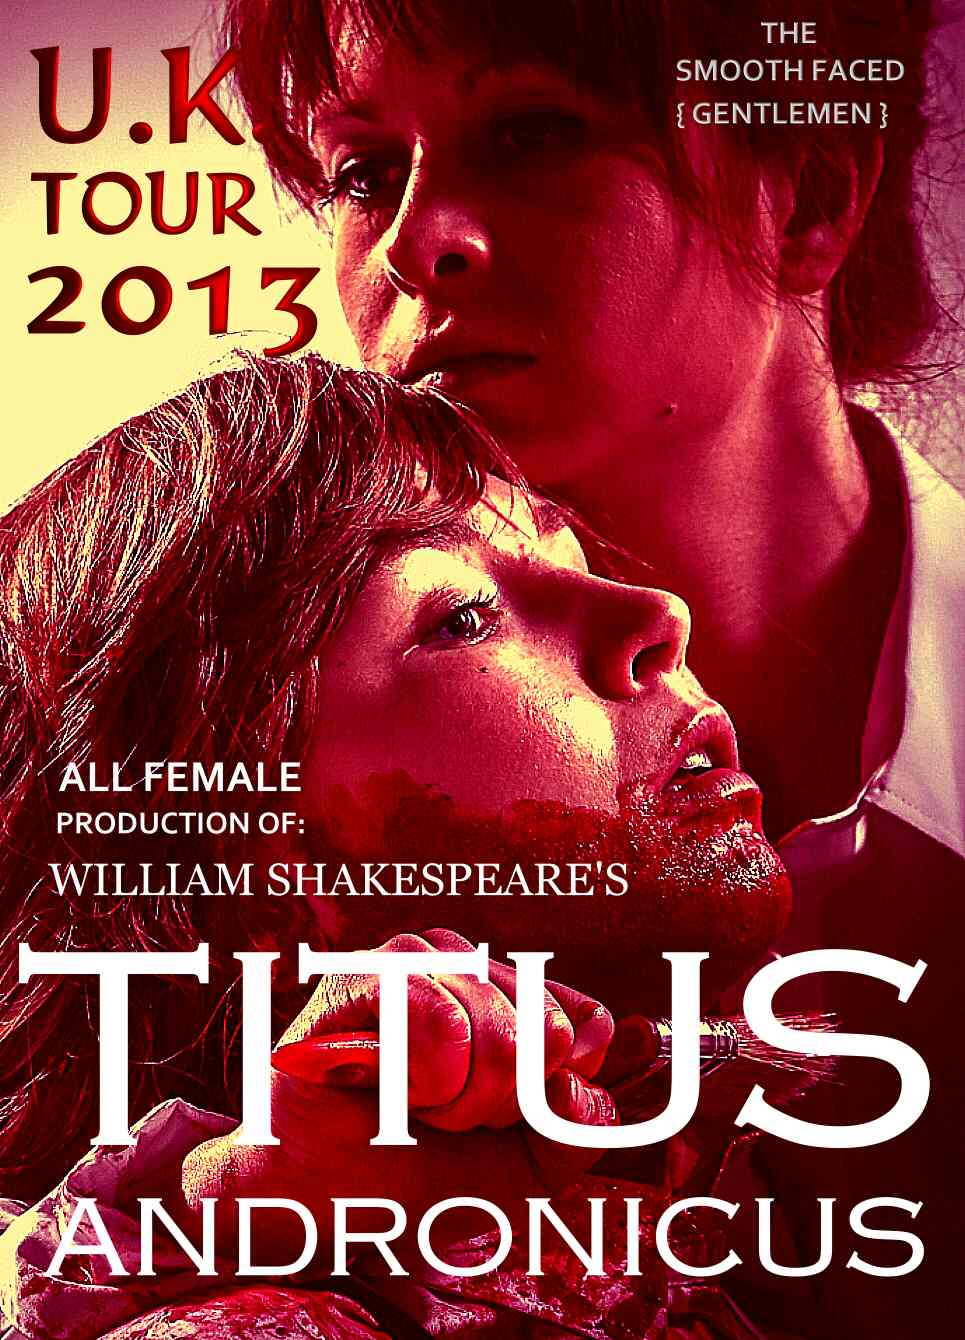 Titus Andronicus poster, Smooth Faced Gentlemen